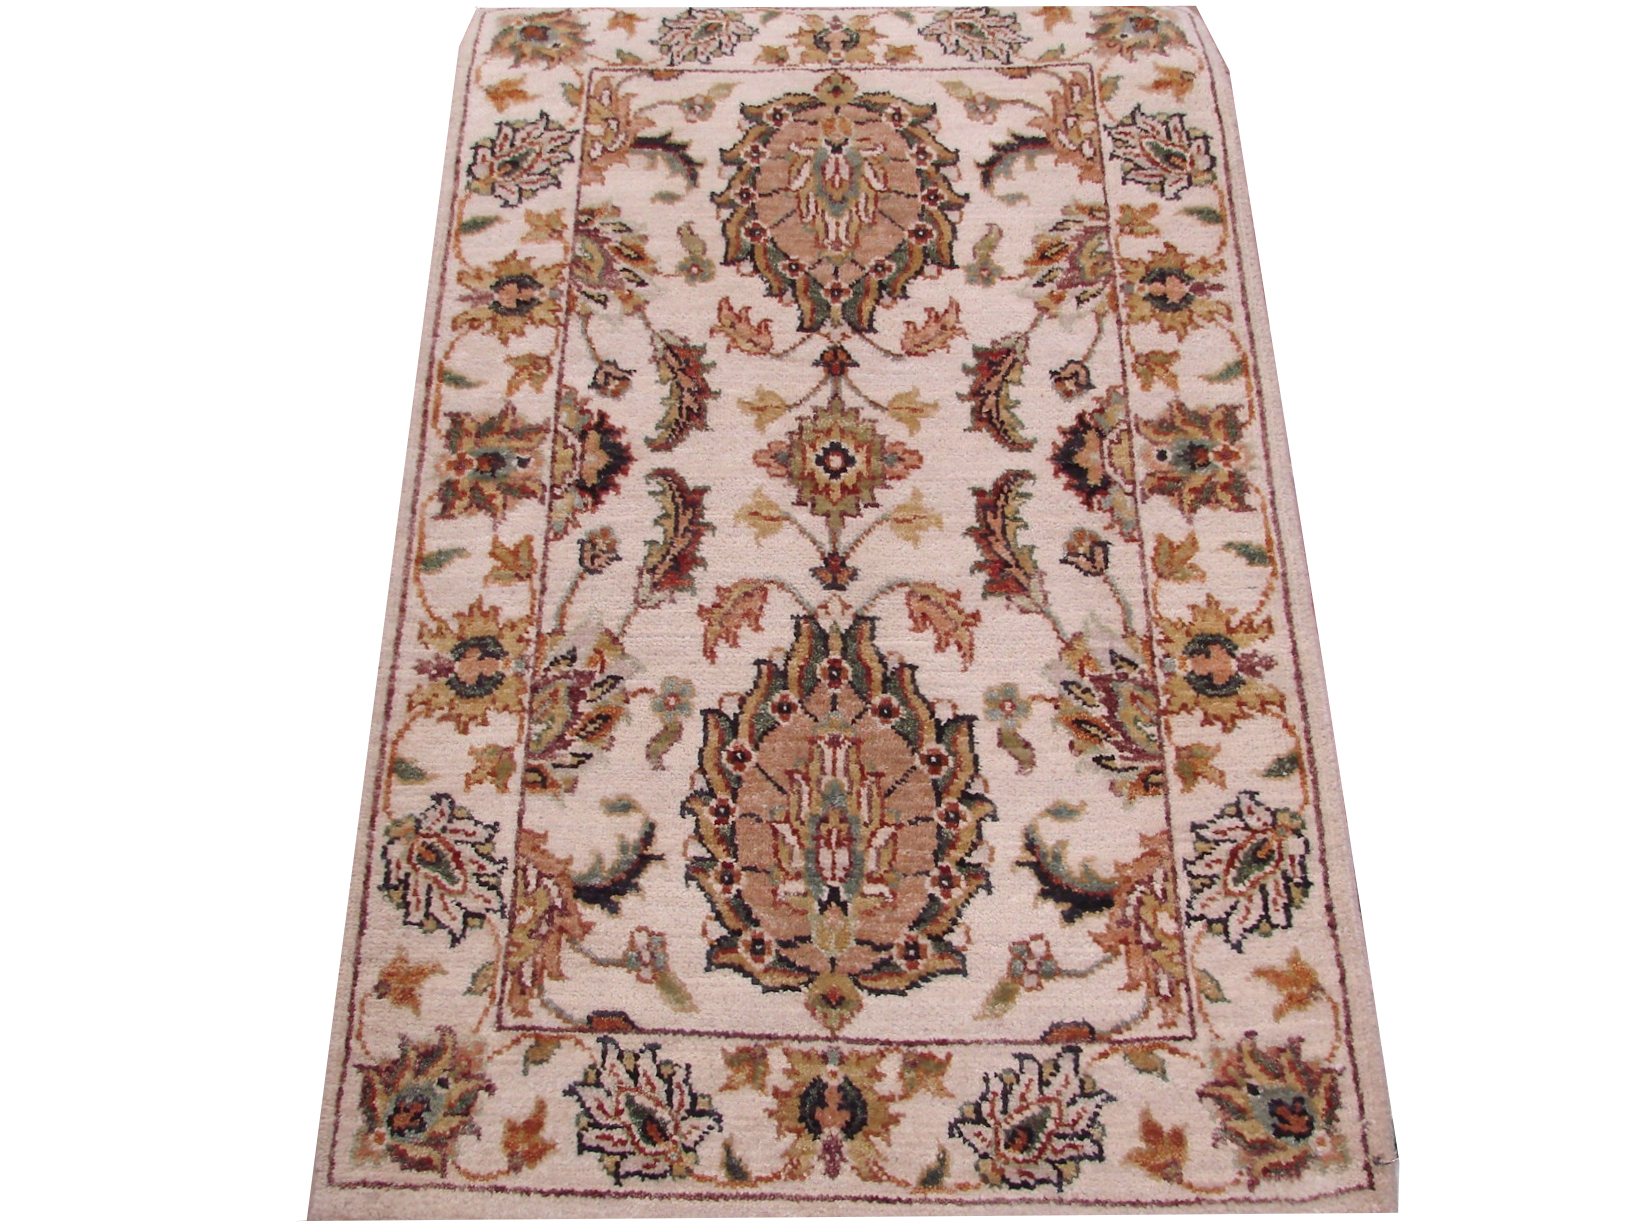 2X3 Traditional Hand Knotted Wool Area Rug - MR15891